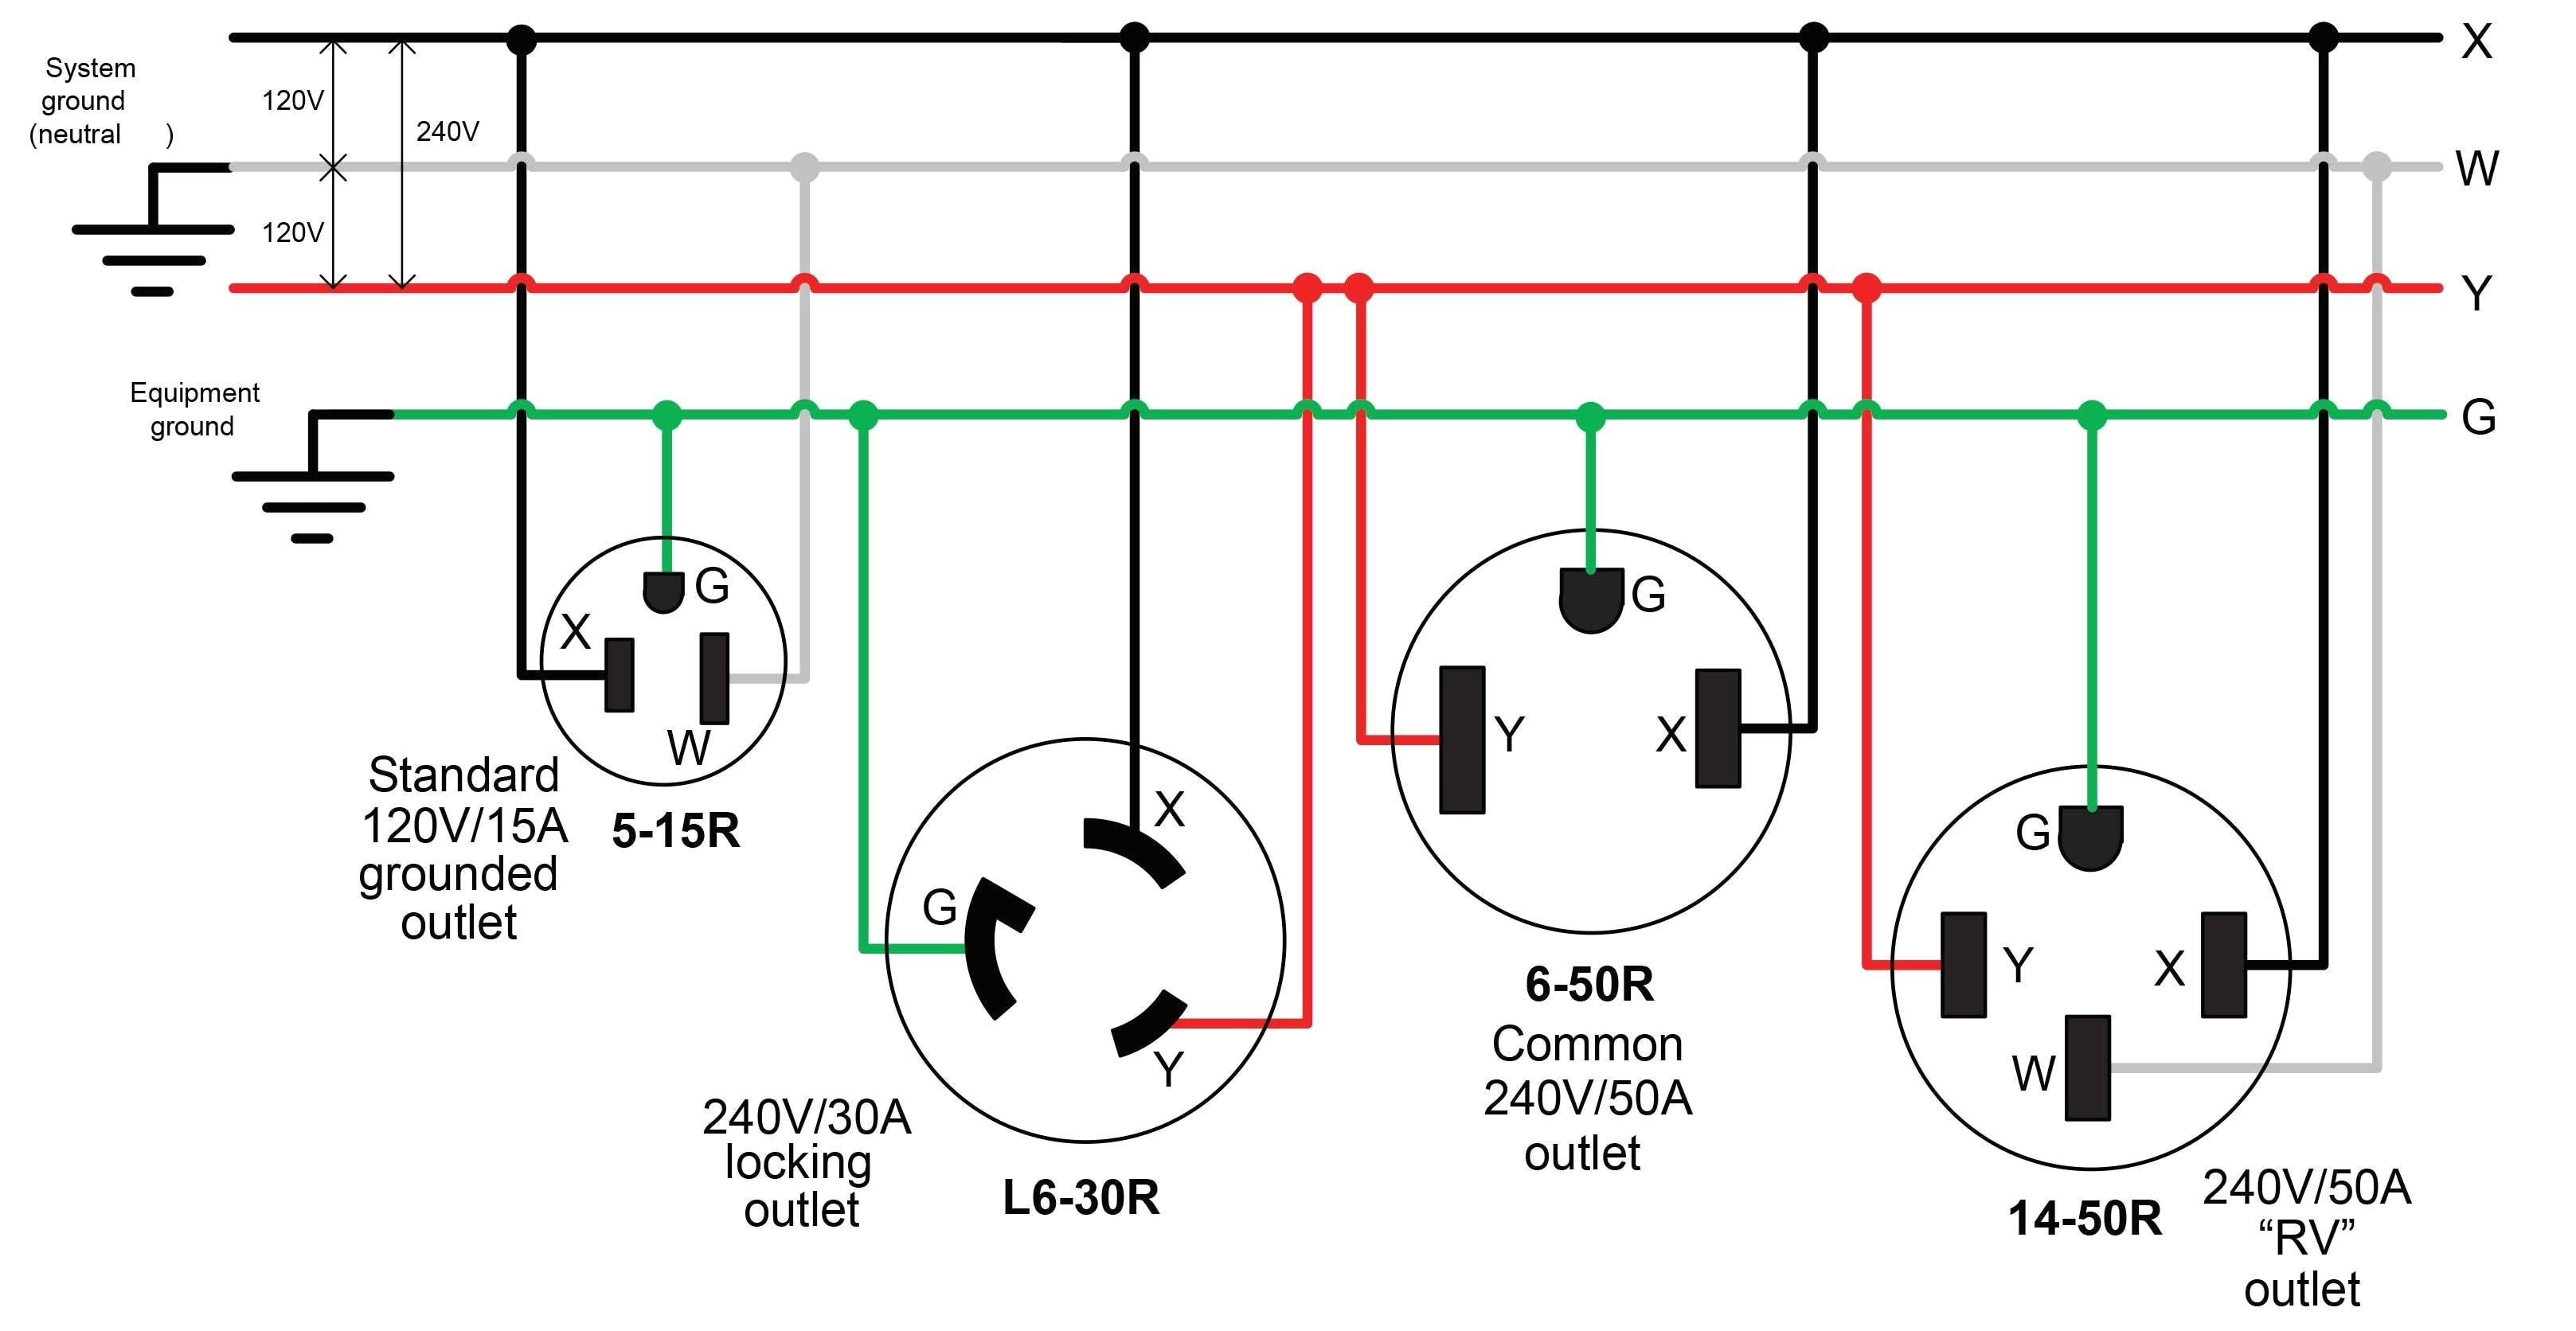 110v outlet wiring diagram wiring data rh unroutine co 110v plug wiring diagram uk 110 volt receptacle wiring diagram